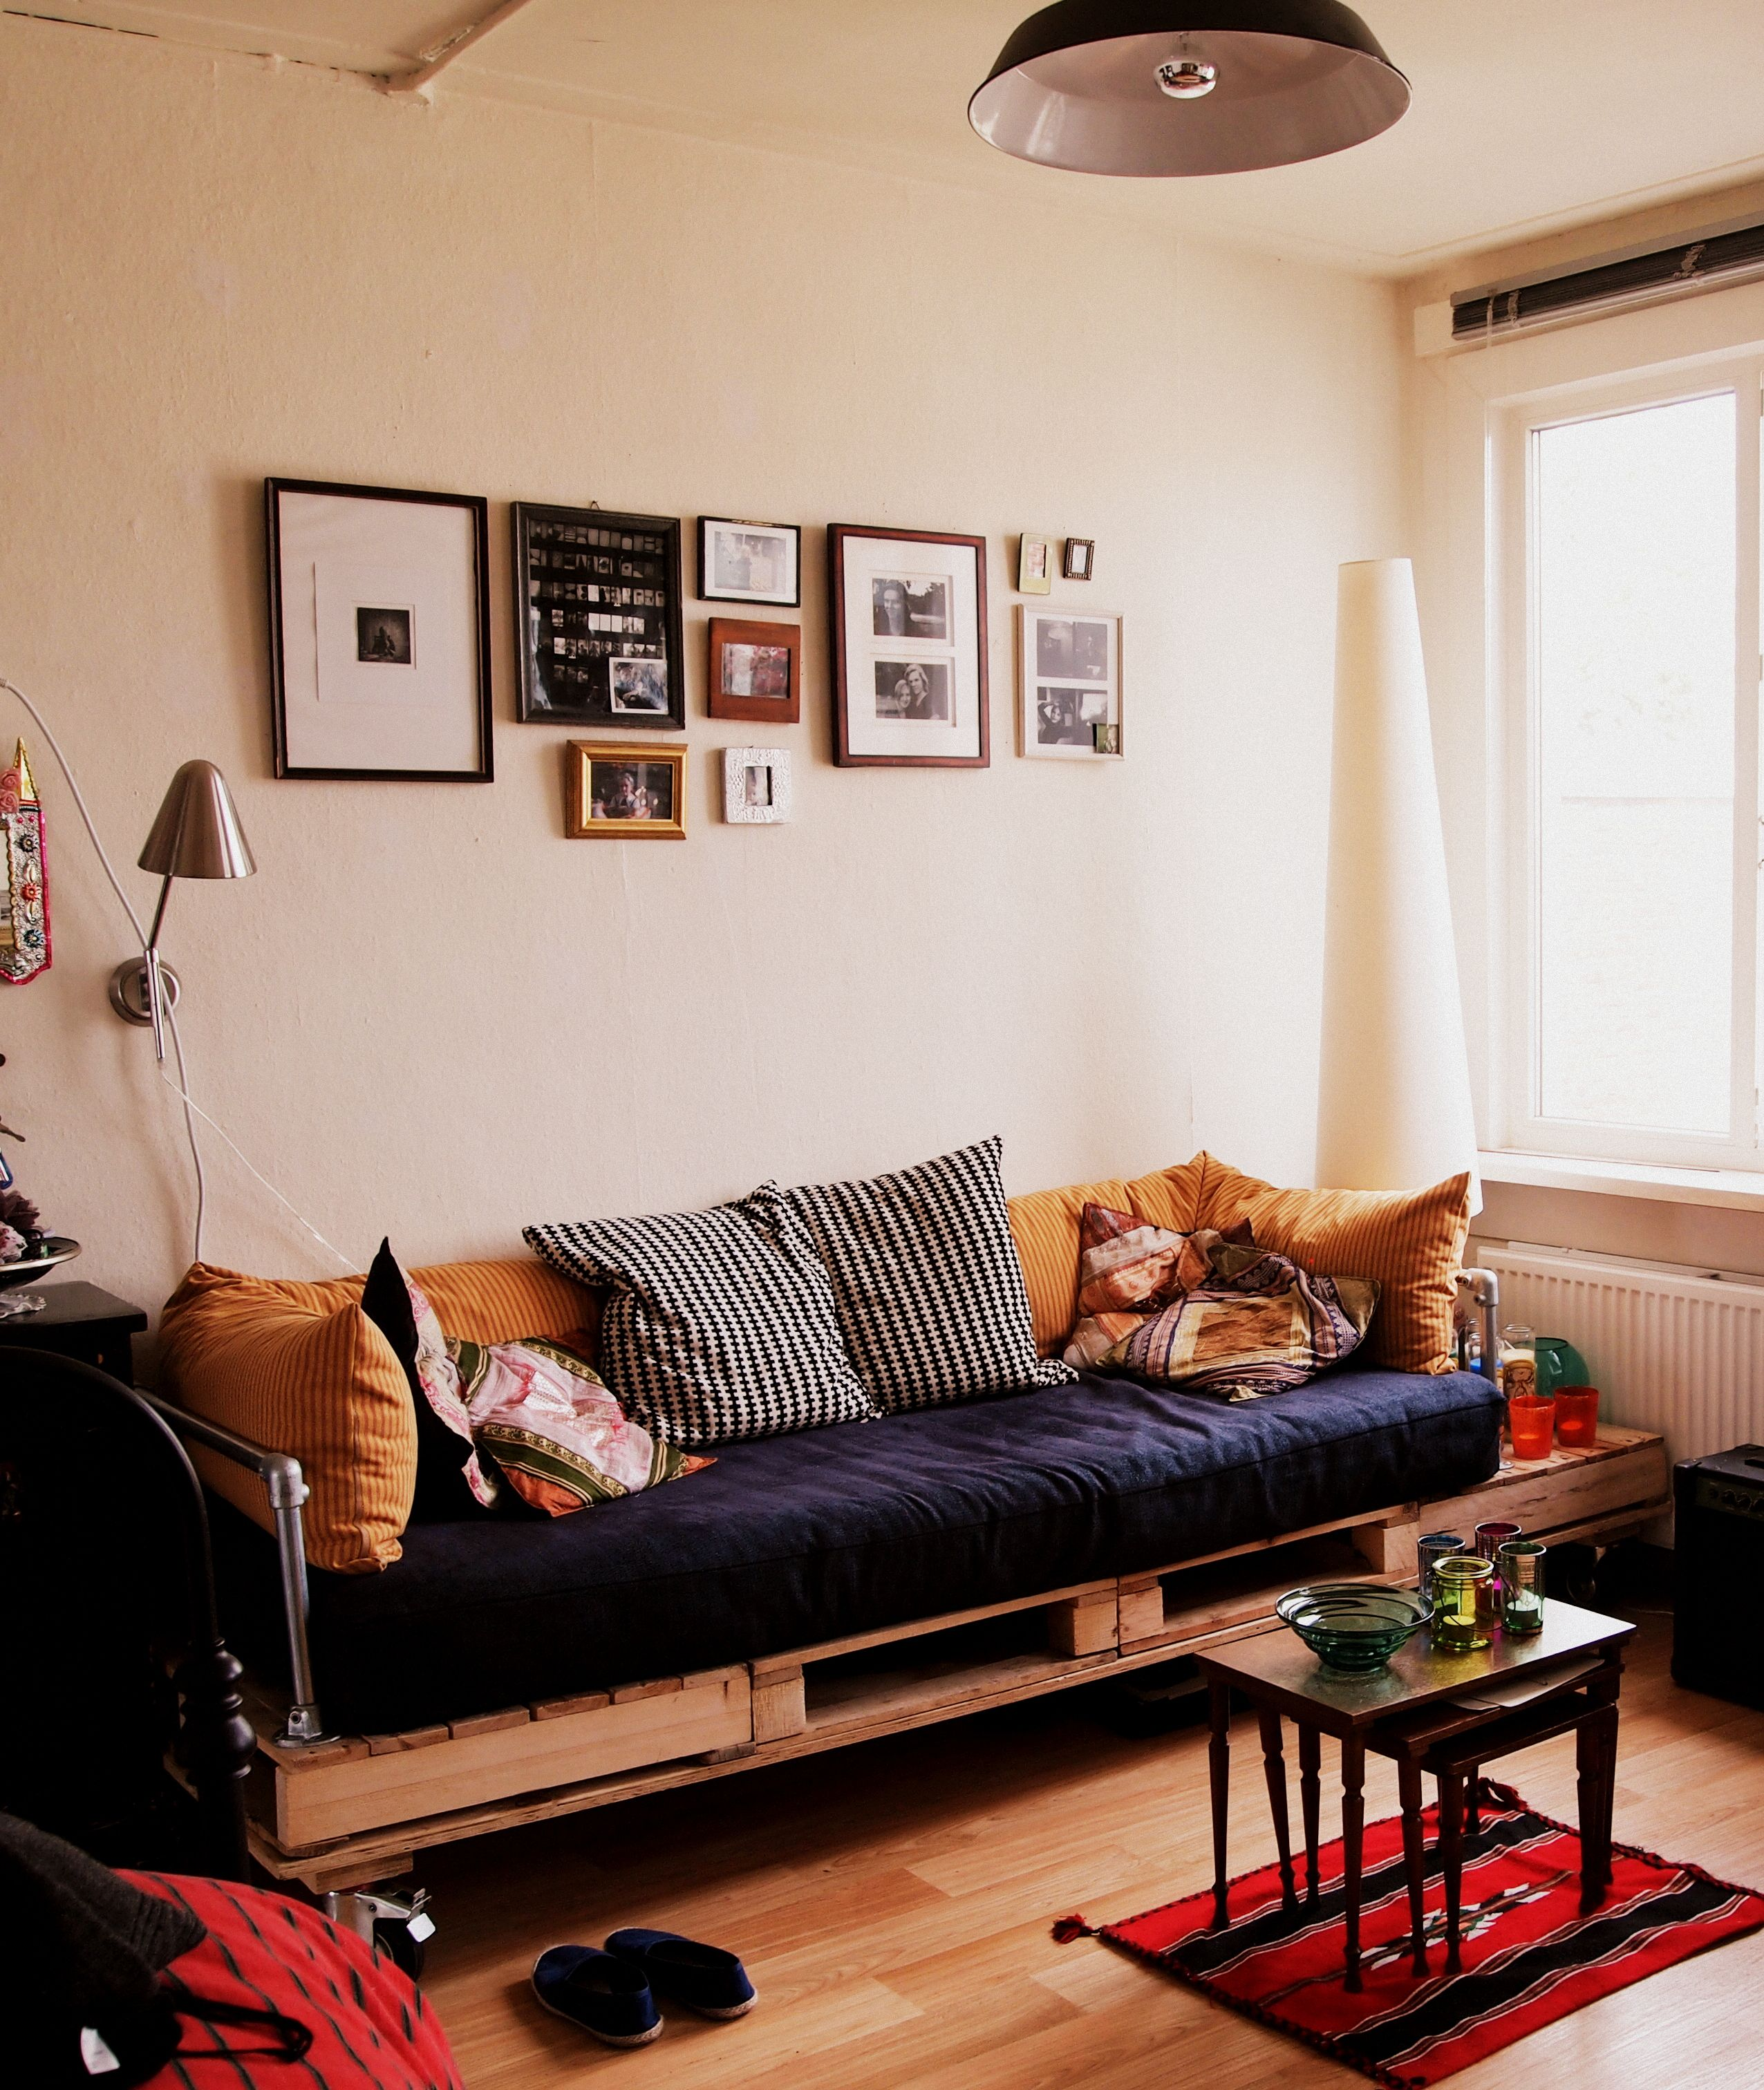 Self Made Daybed/couch